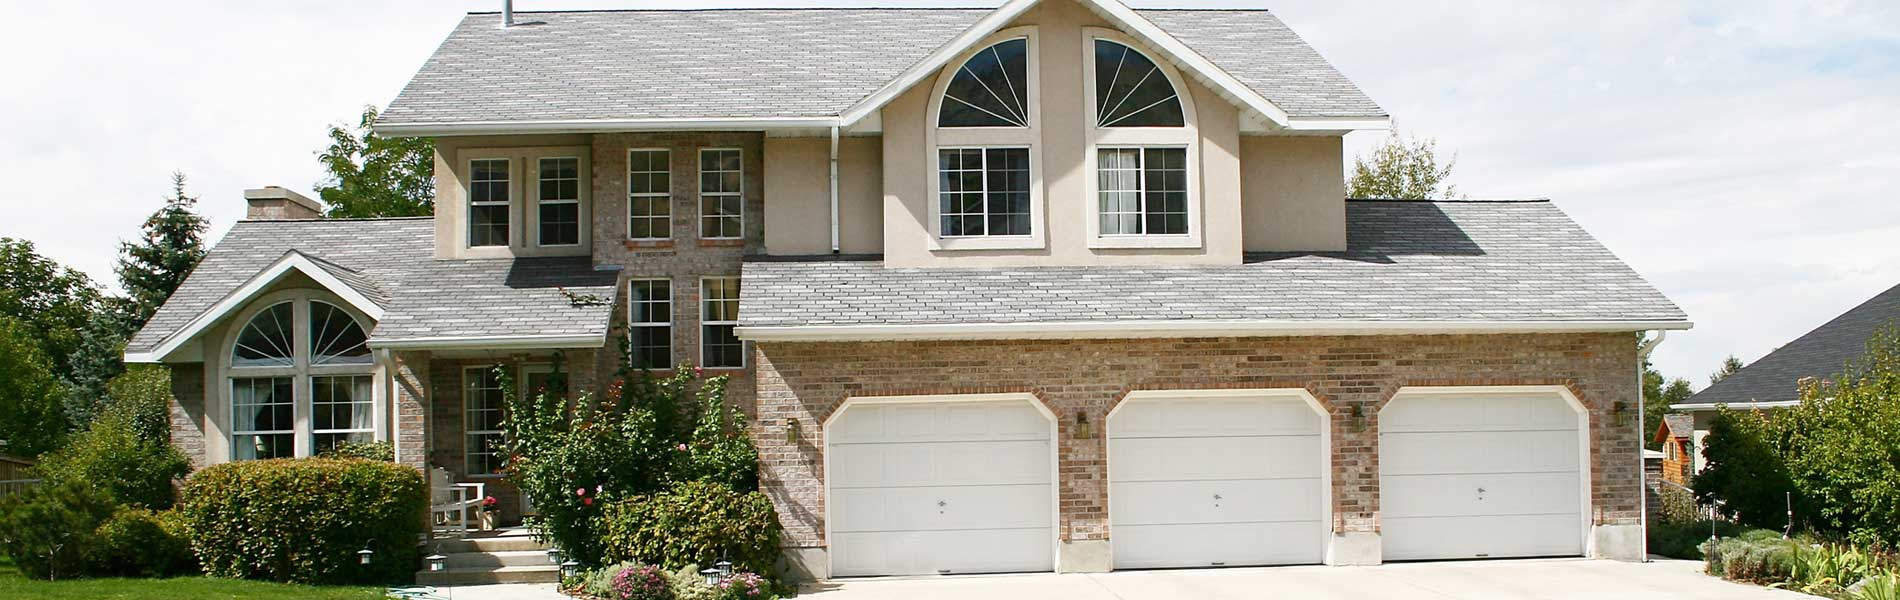 Elite Garage Door Service, Gilbert, AZ 866-818-6016